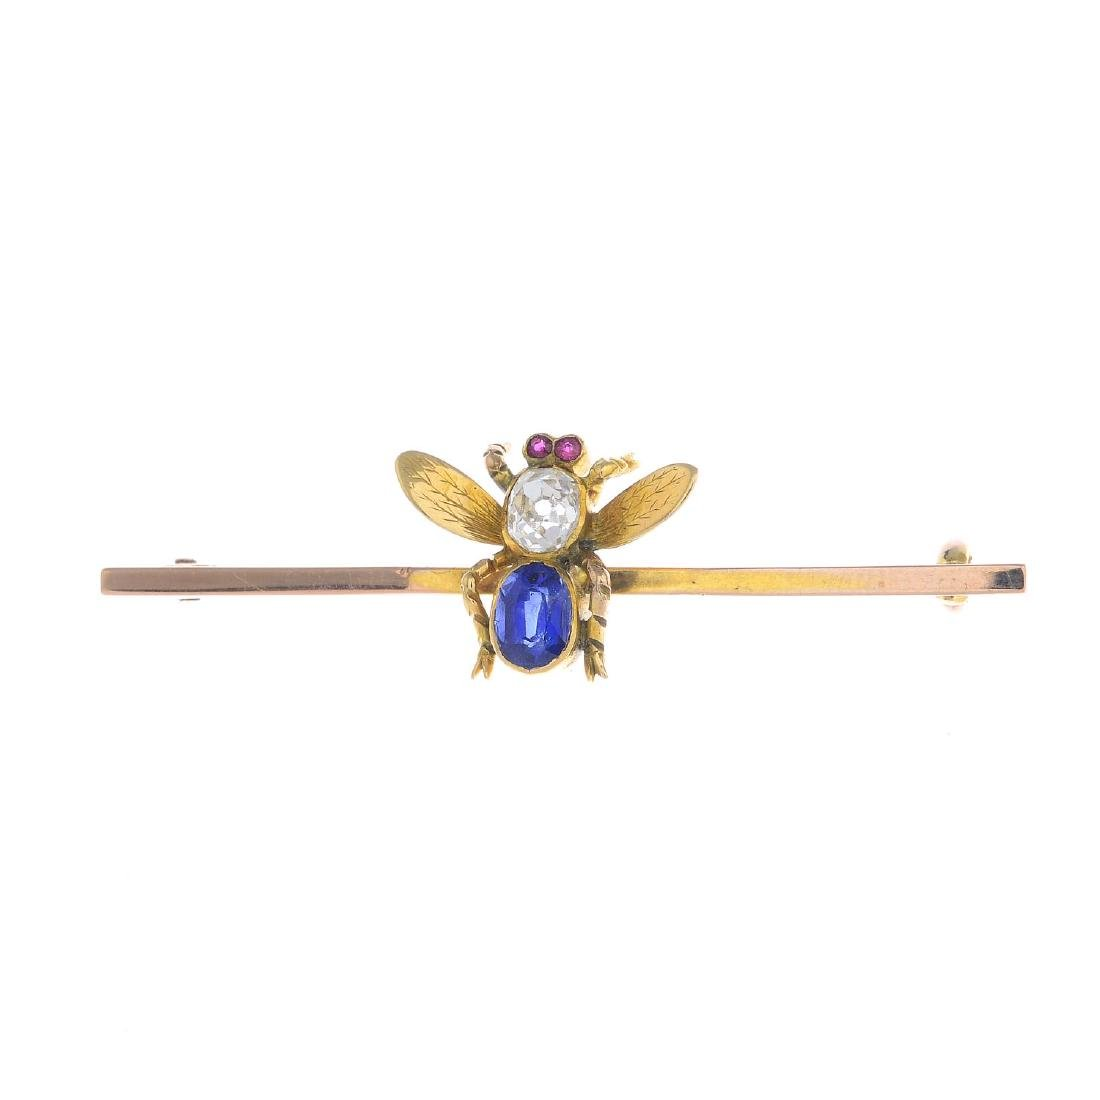 An early 20th century gold diamond and gem-set fly